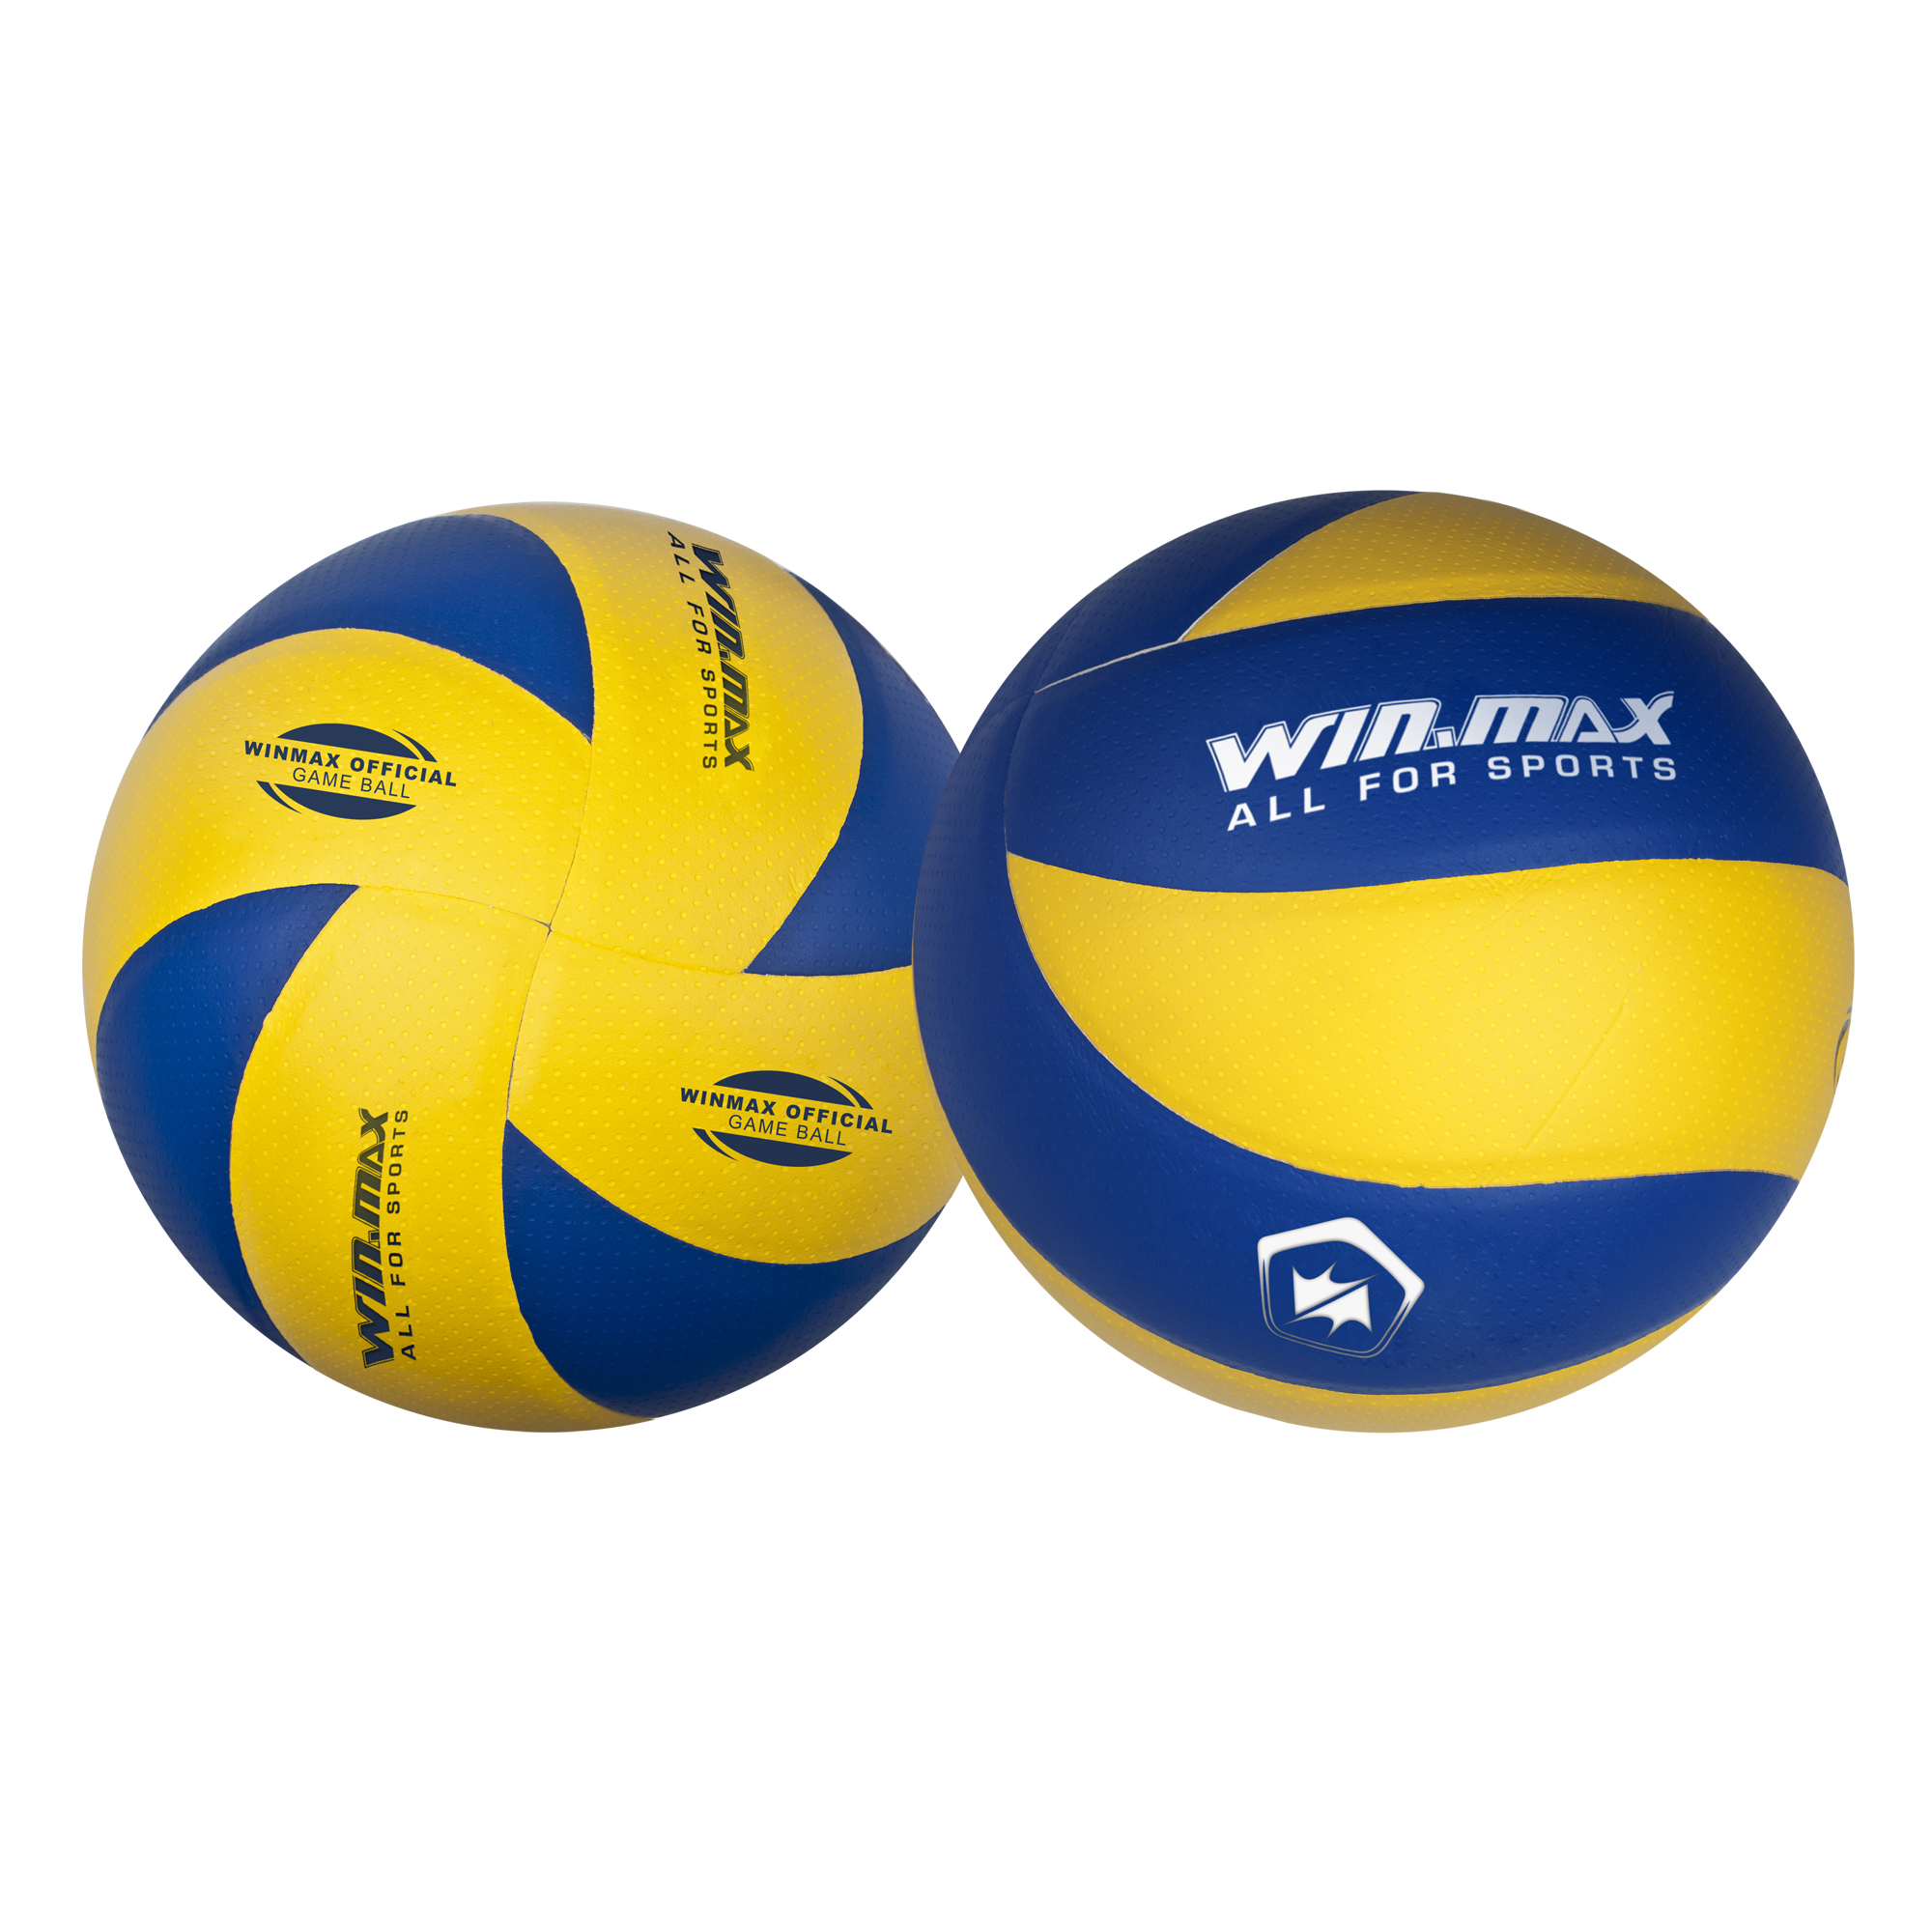 WIN.MAX competition volleyball match official size 5veneer volleyball